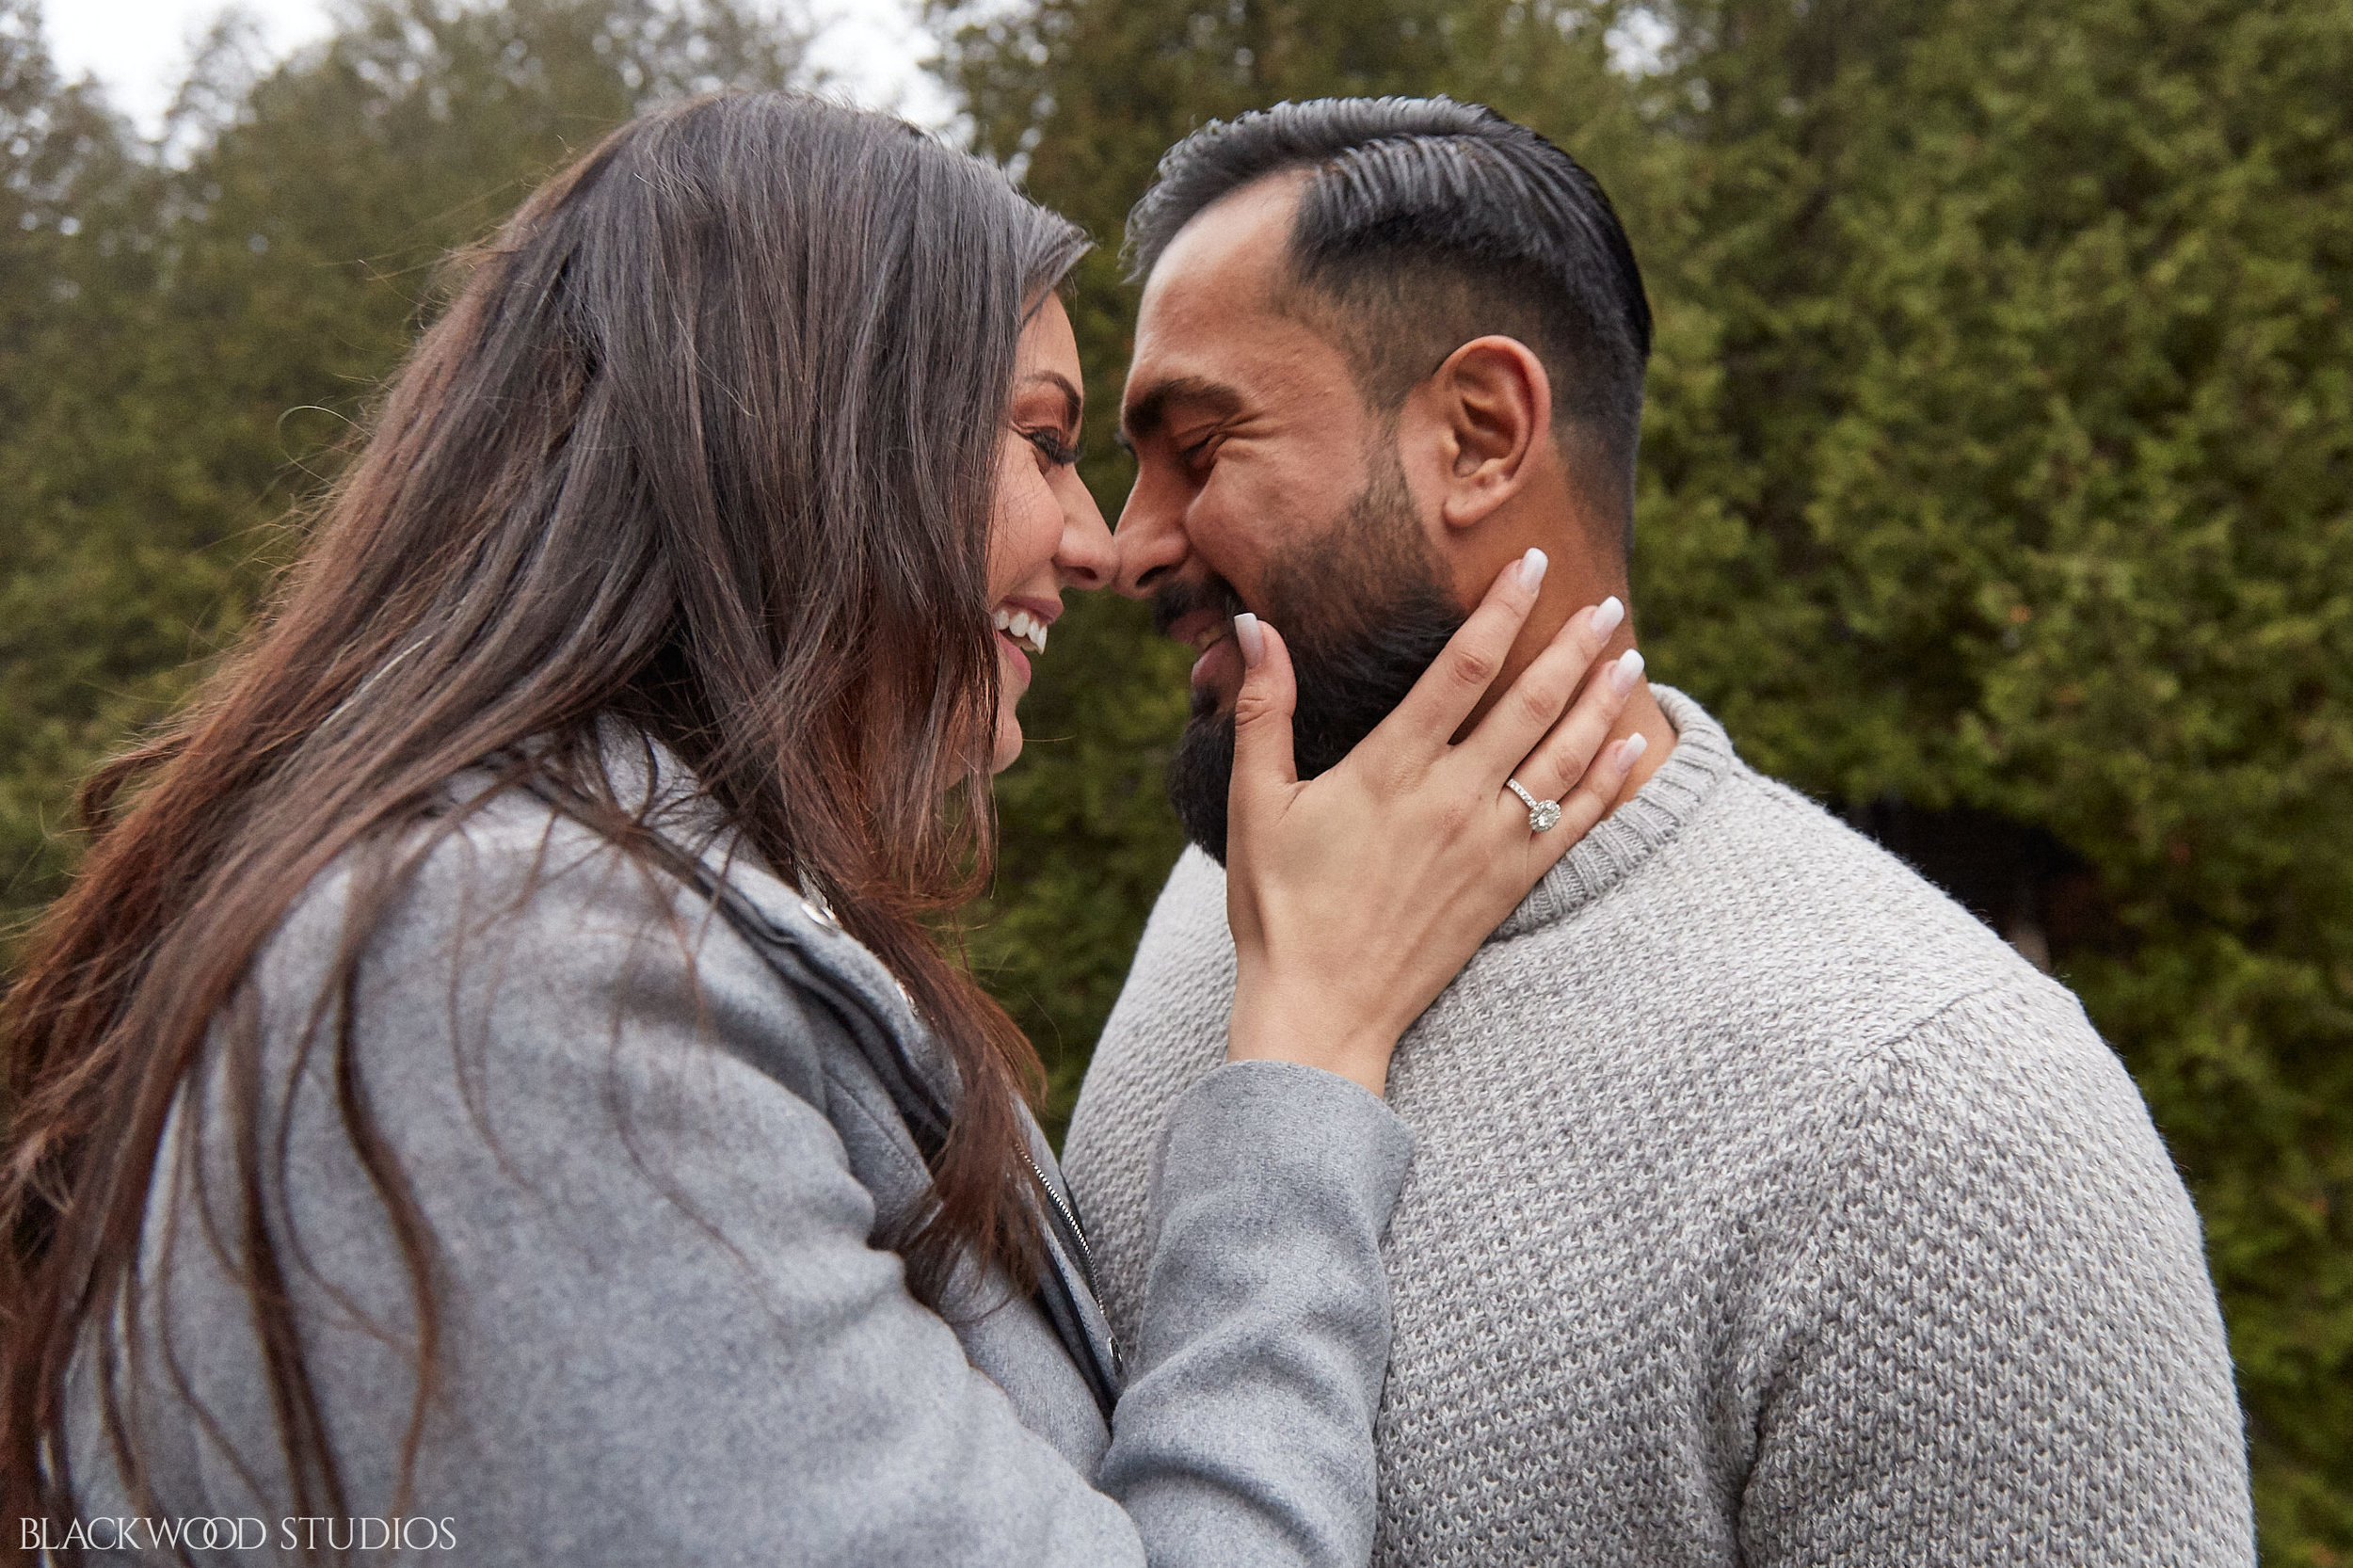 Blackwood-Studios-20181028180814-Farah-and-Zain-Engagement-photography-Belfountain-Conservation-Area-Caledon-Ontario.jpg